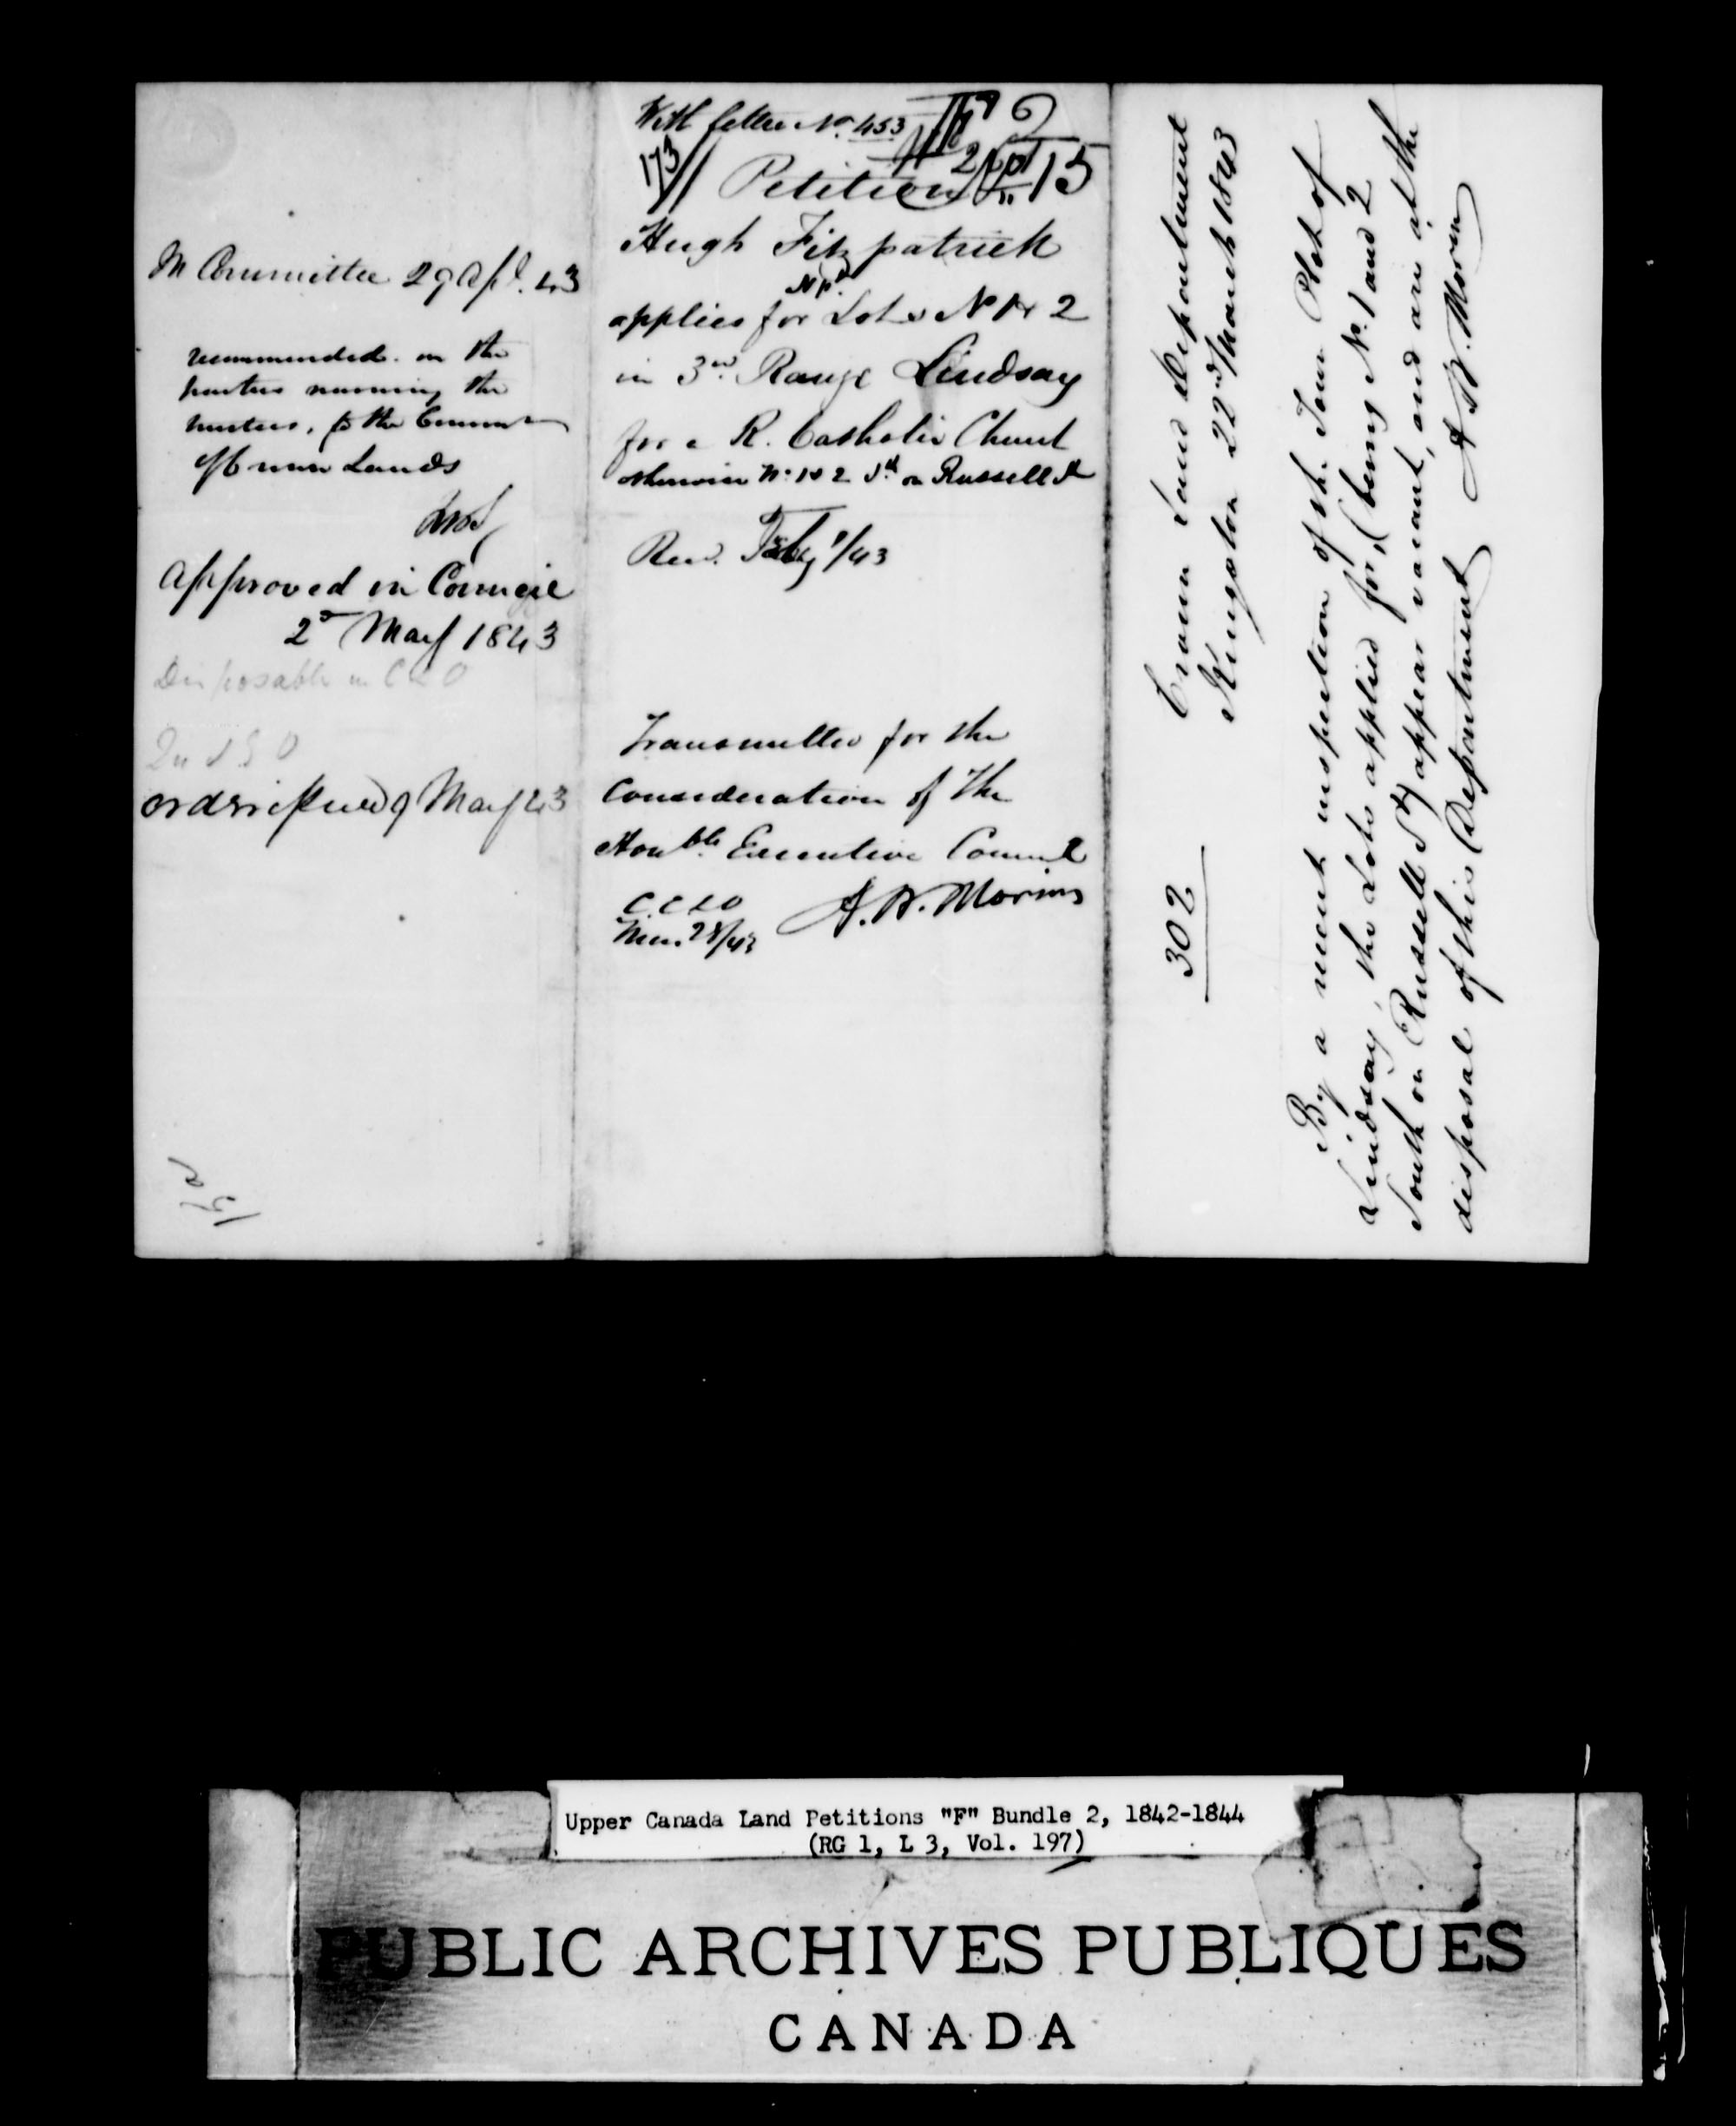 Title: Upper Canada Land Petitions (1763-1865) - Mikan Number: 205131 - Microform: c-2023